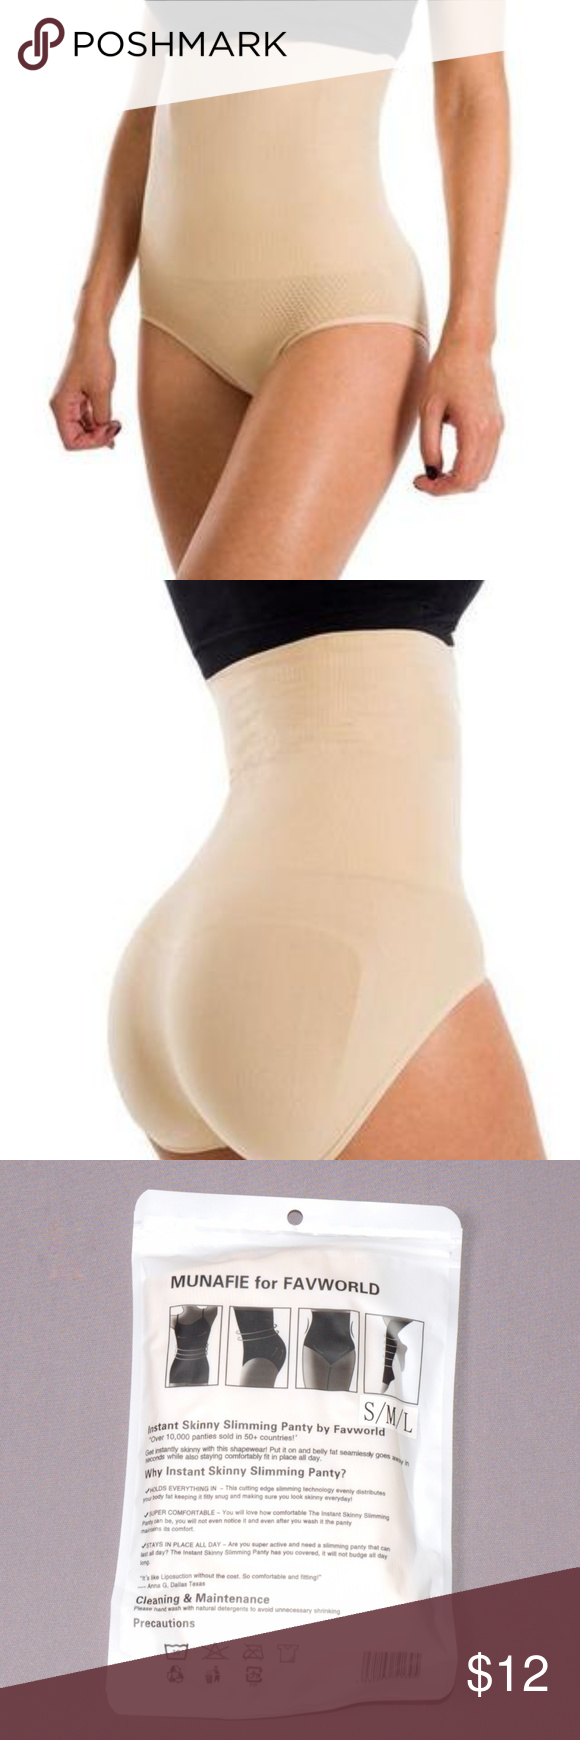 cf806a9a1e8b Munafie for FAVWORLD Slimming Panty Beige Brand: Munafie for FAVWORLD Size:  S/M